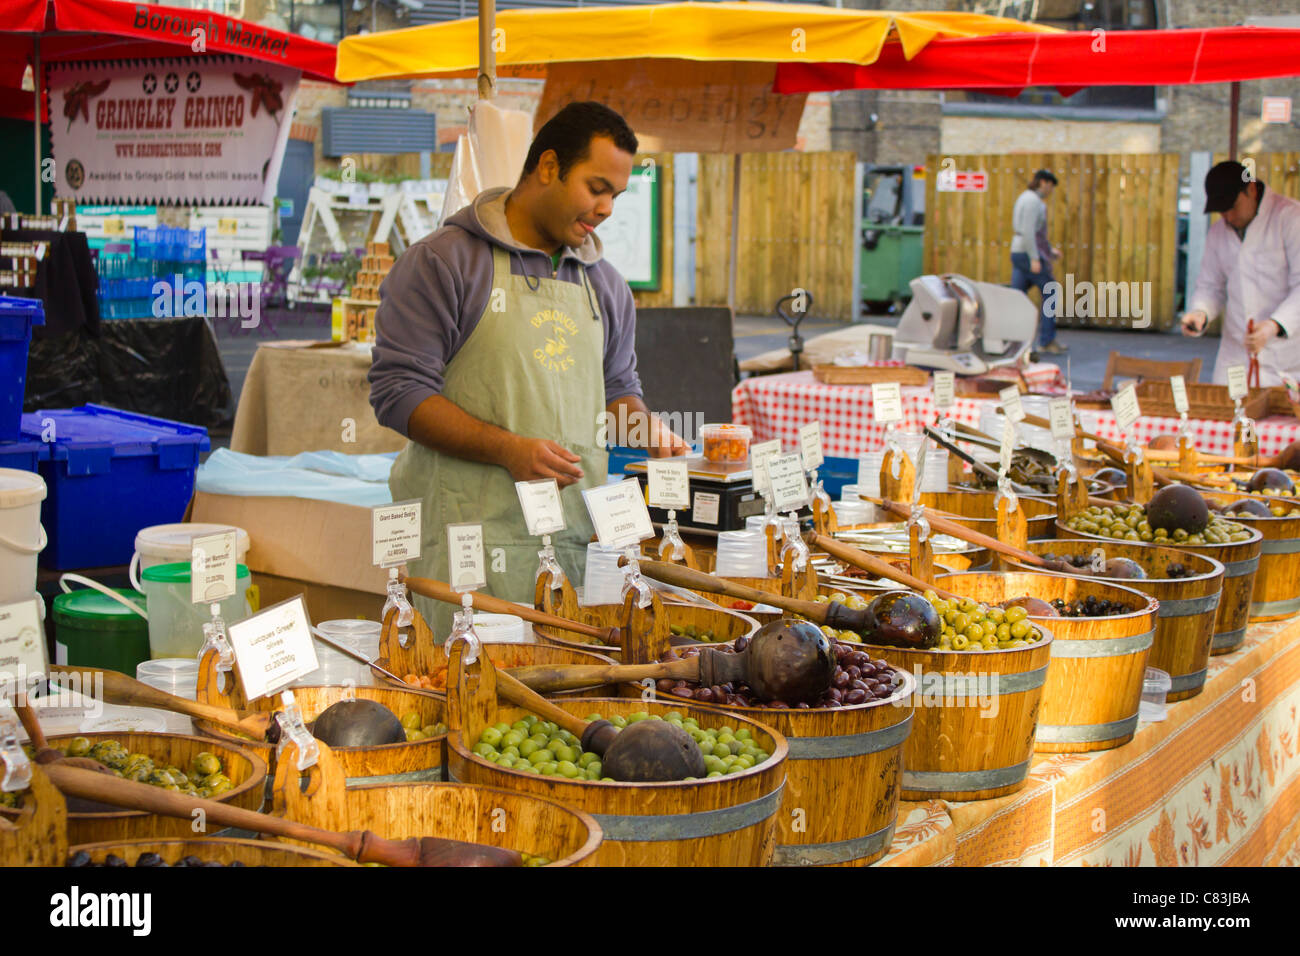 Market trader at a olive stall at Borough Market. - Stock Image